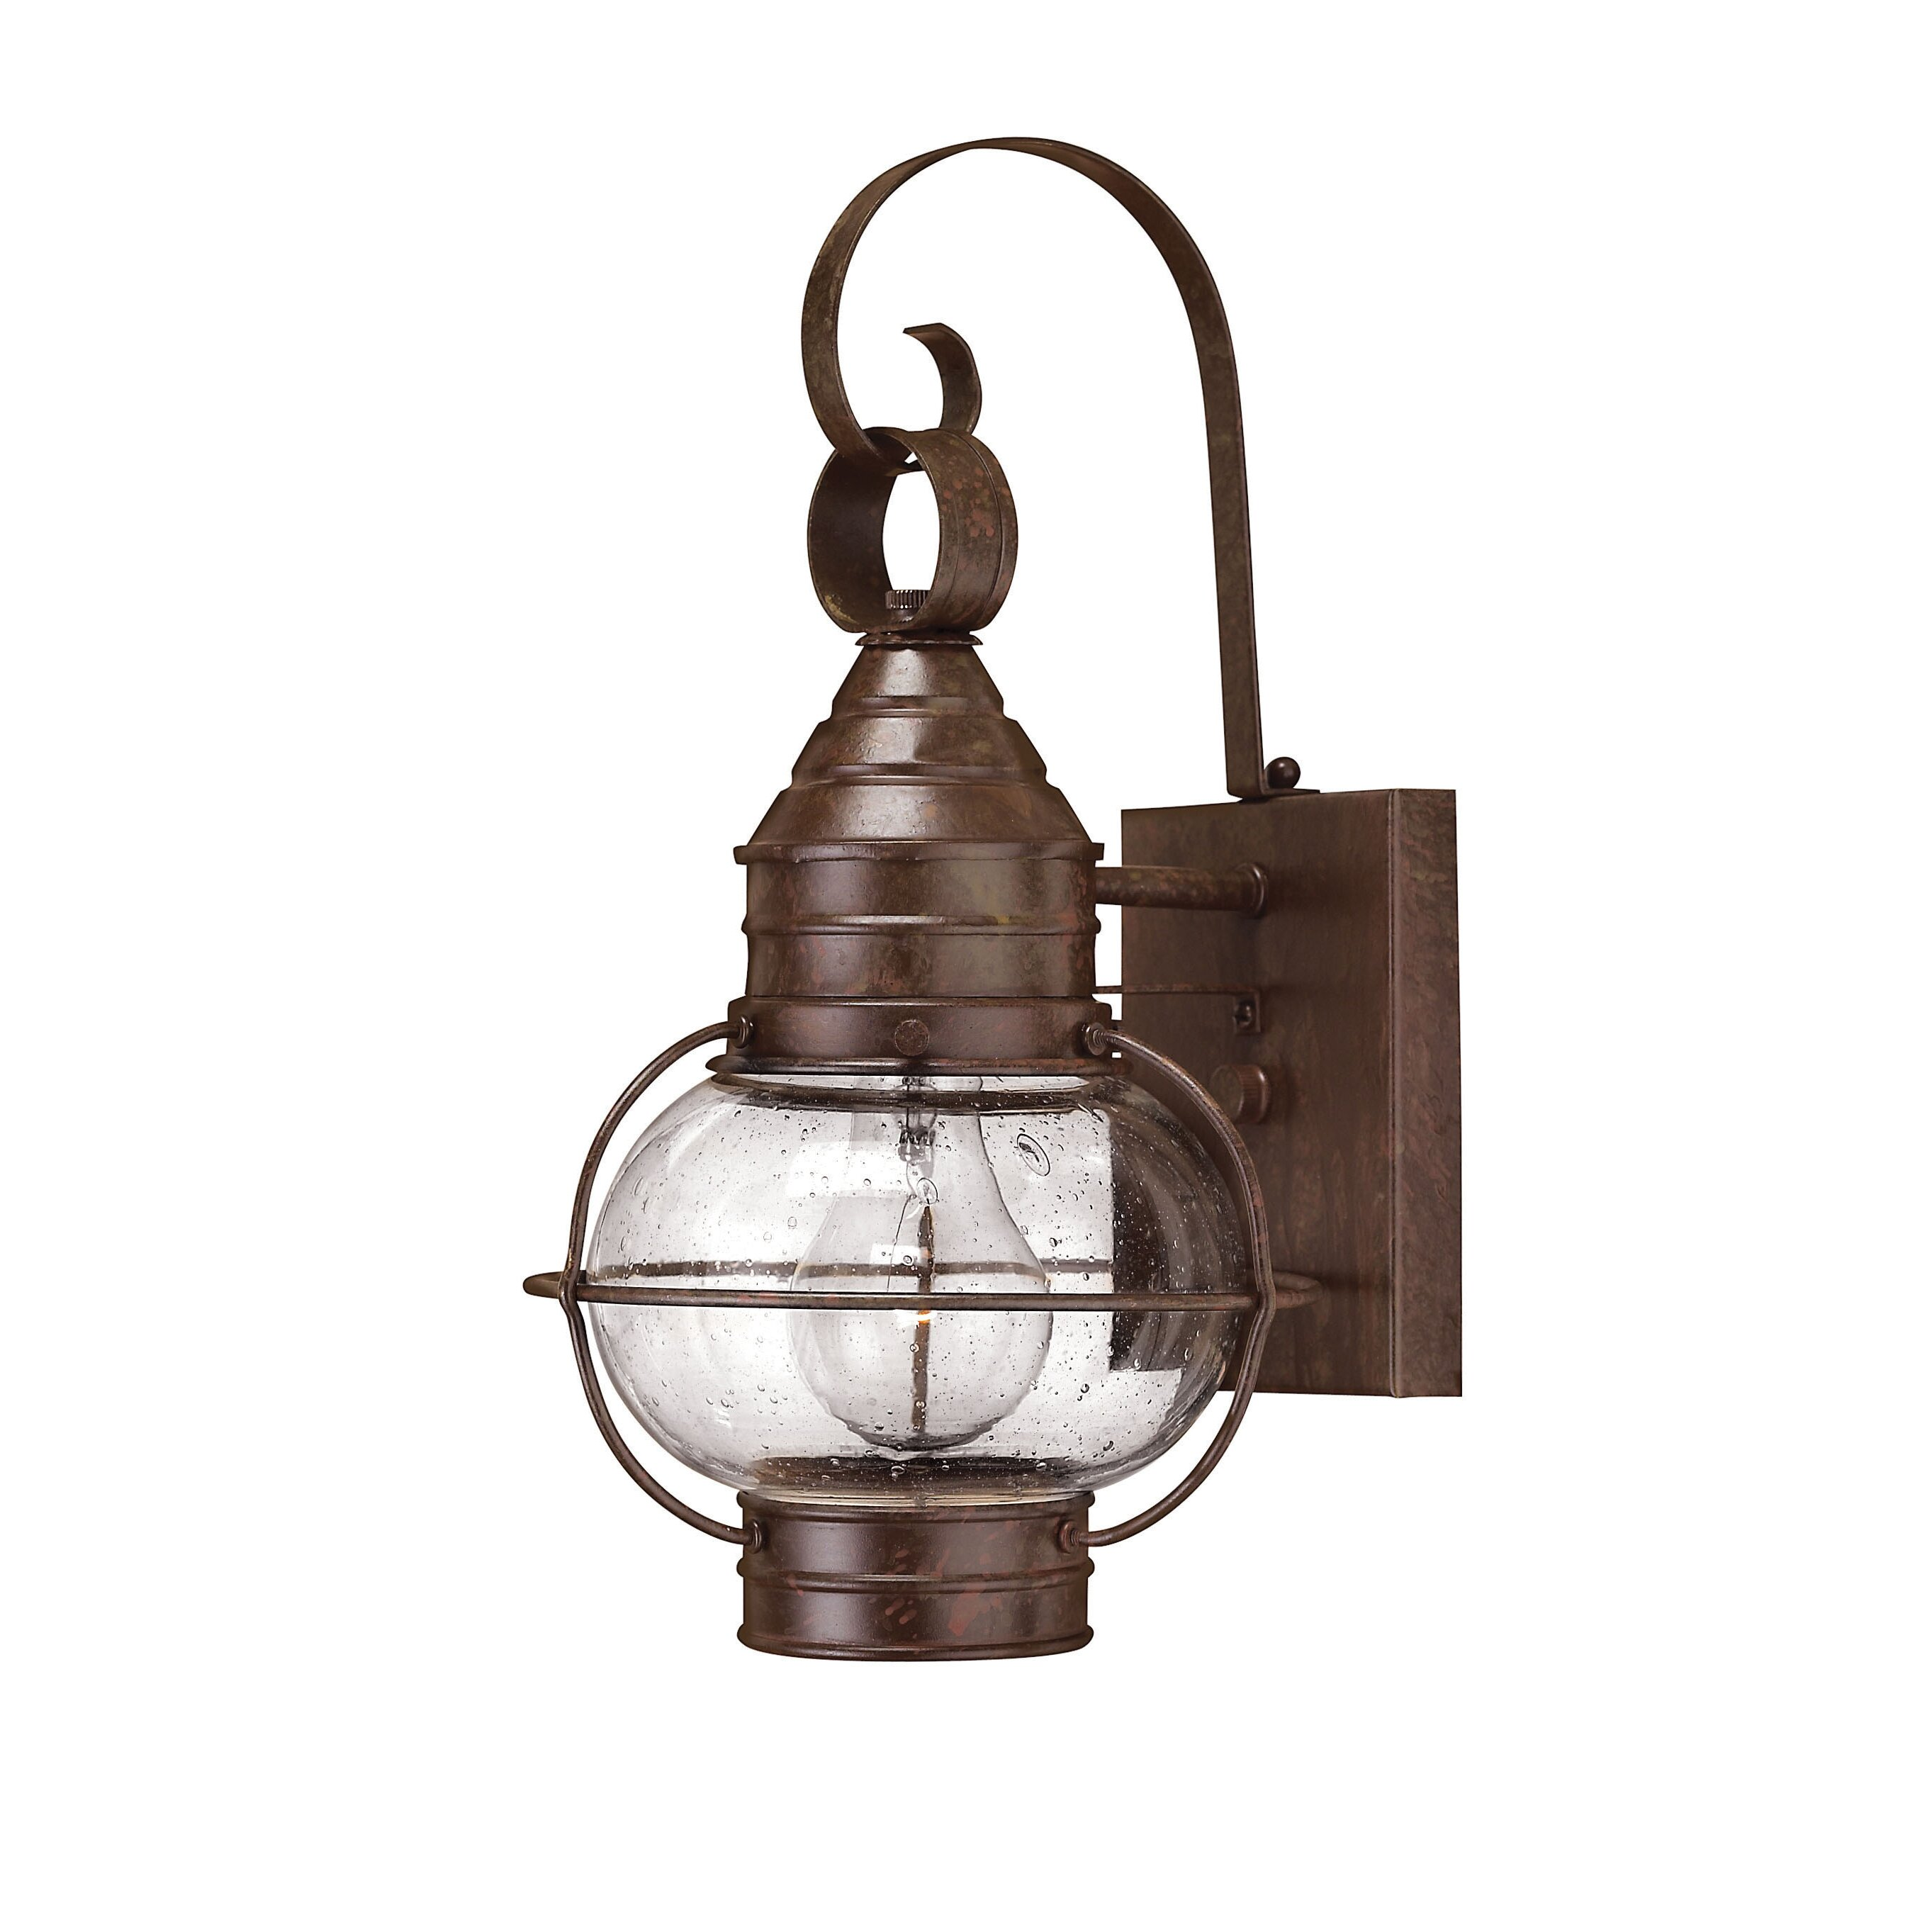 Wayfair External Wall Lights : Hinkley Lighting Cape Cod 1 Light Outdoor Wall Lantern & Reviews Wayfair